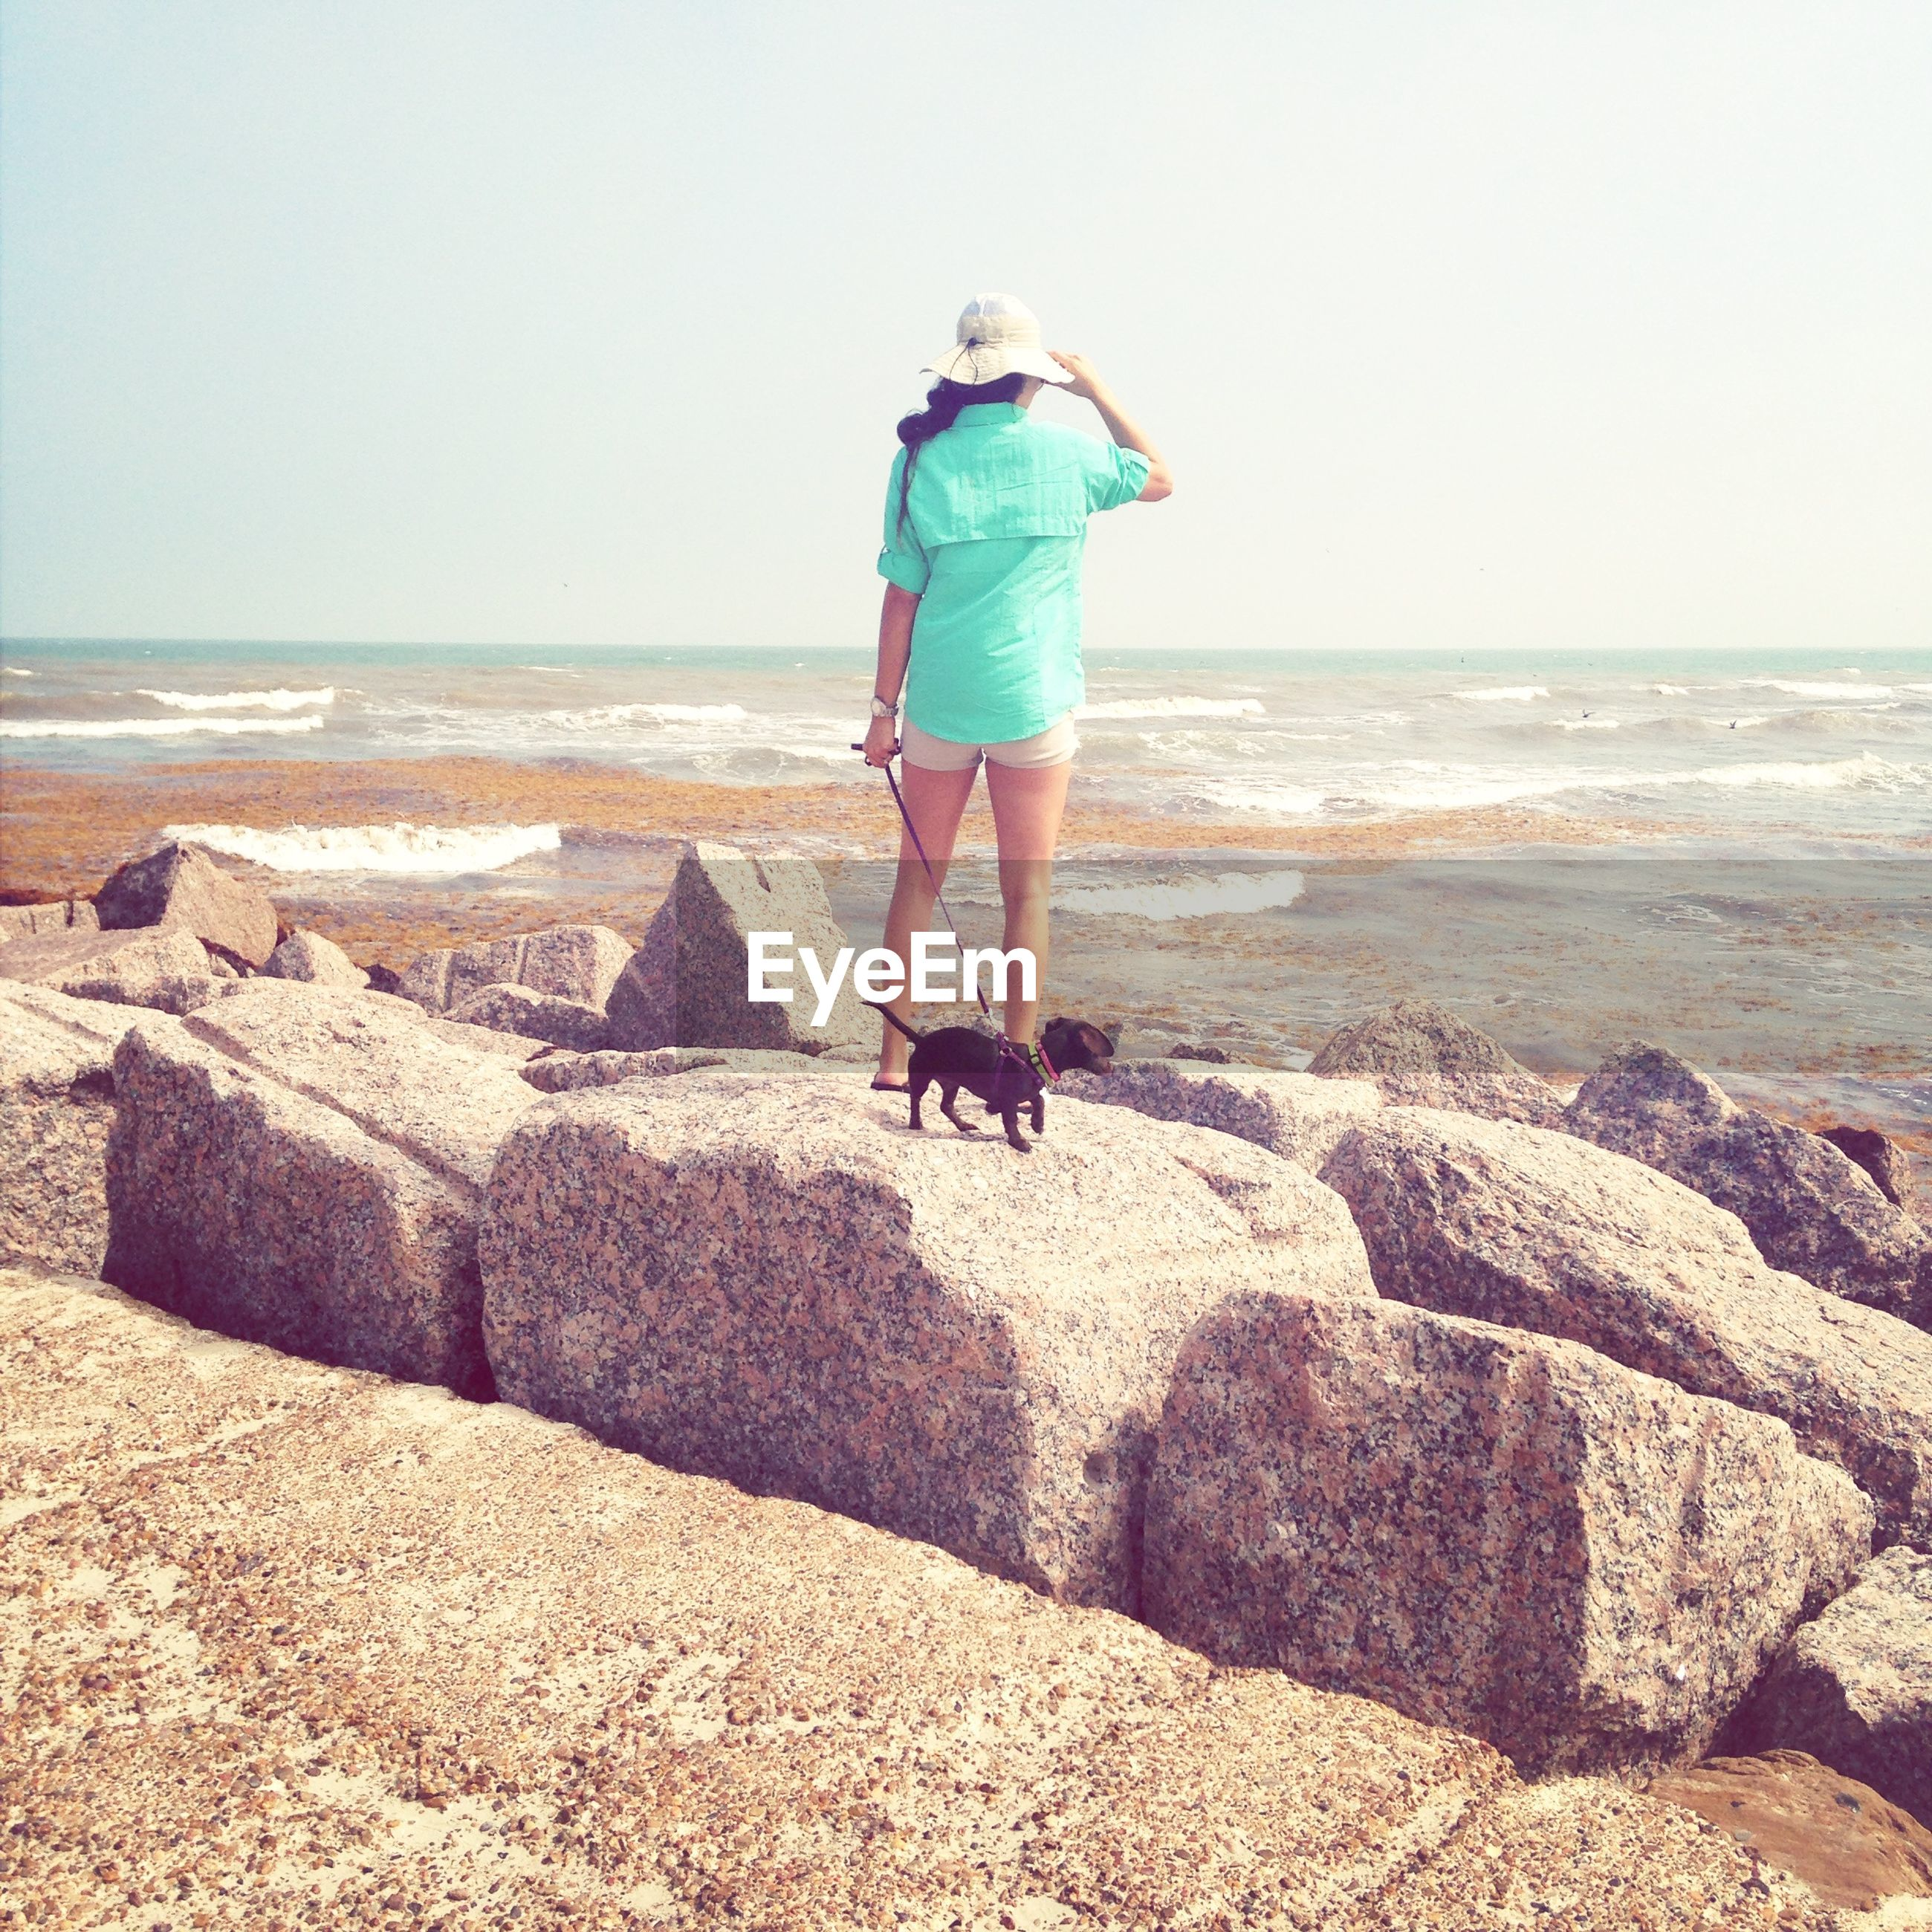 horizon over water, sea, beach, shore, clear sky, full length, rear view, sand, water, lifestyles, leisure activity, casual clothing, standing, copy space, sky, vacations, tranquility, beauty in nature